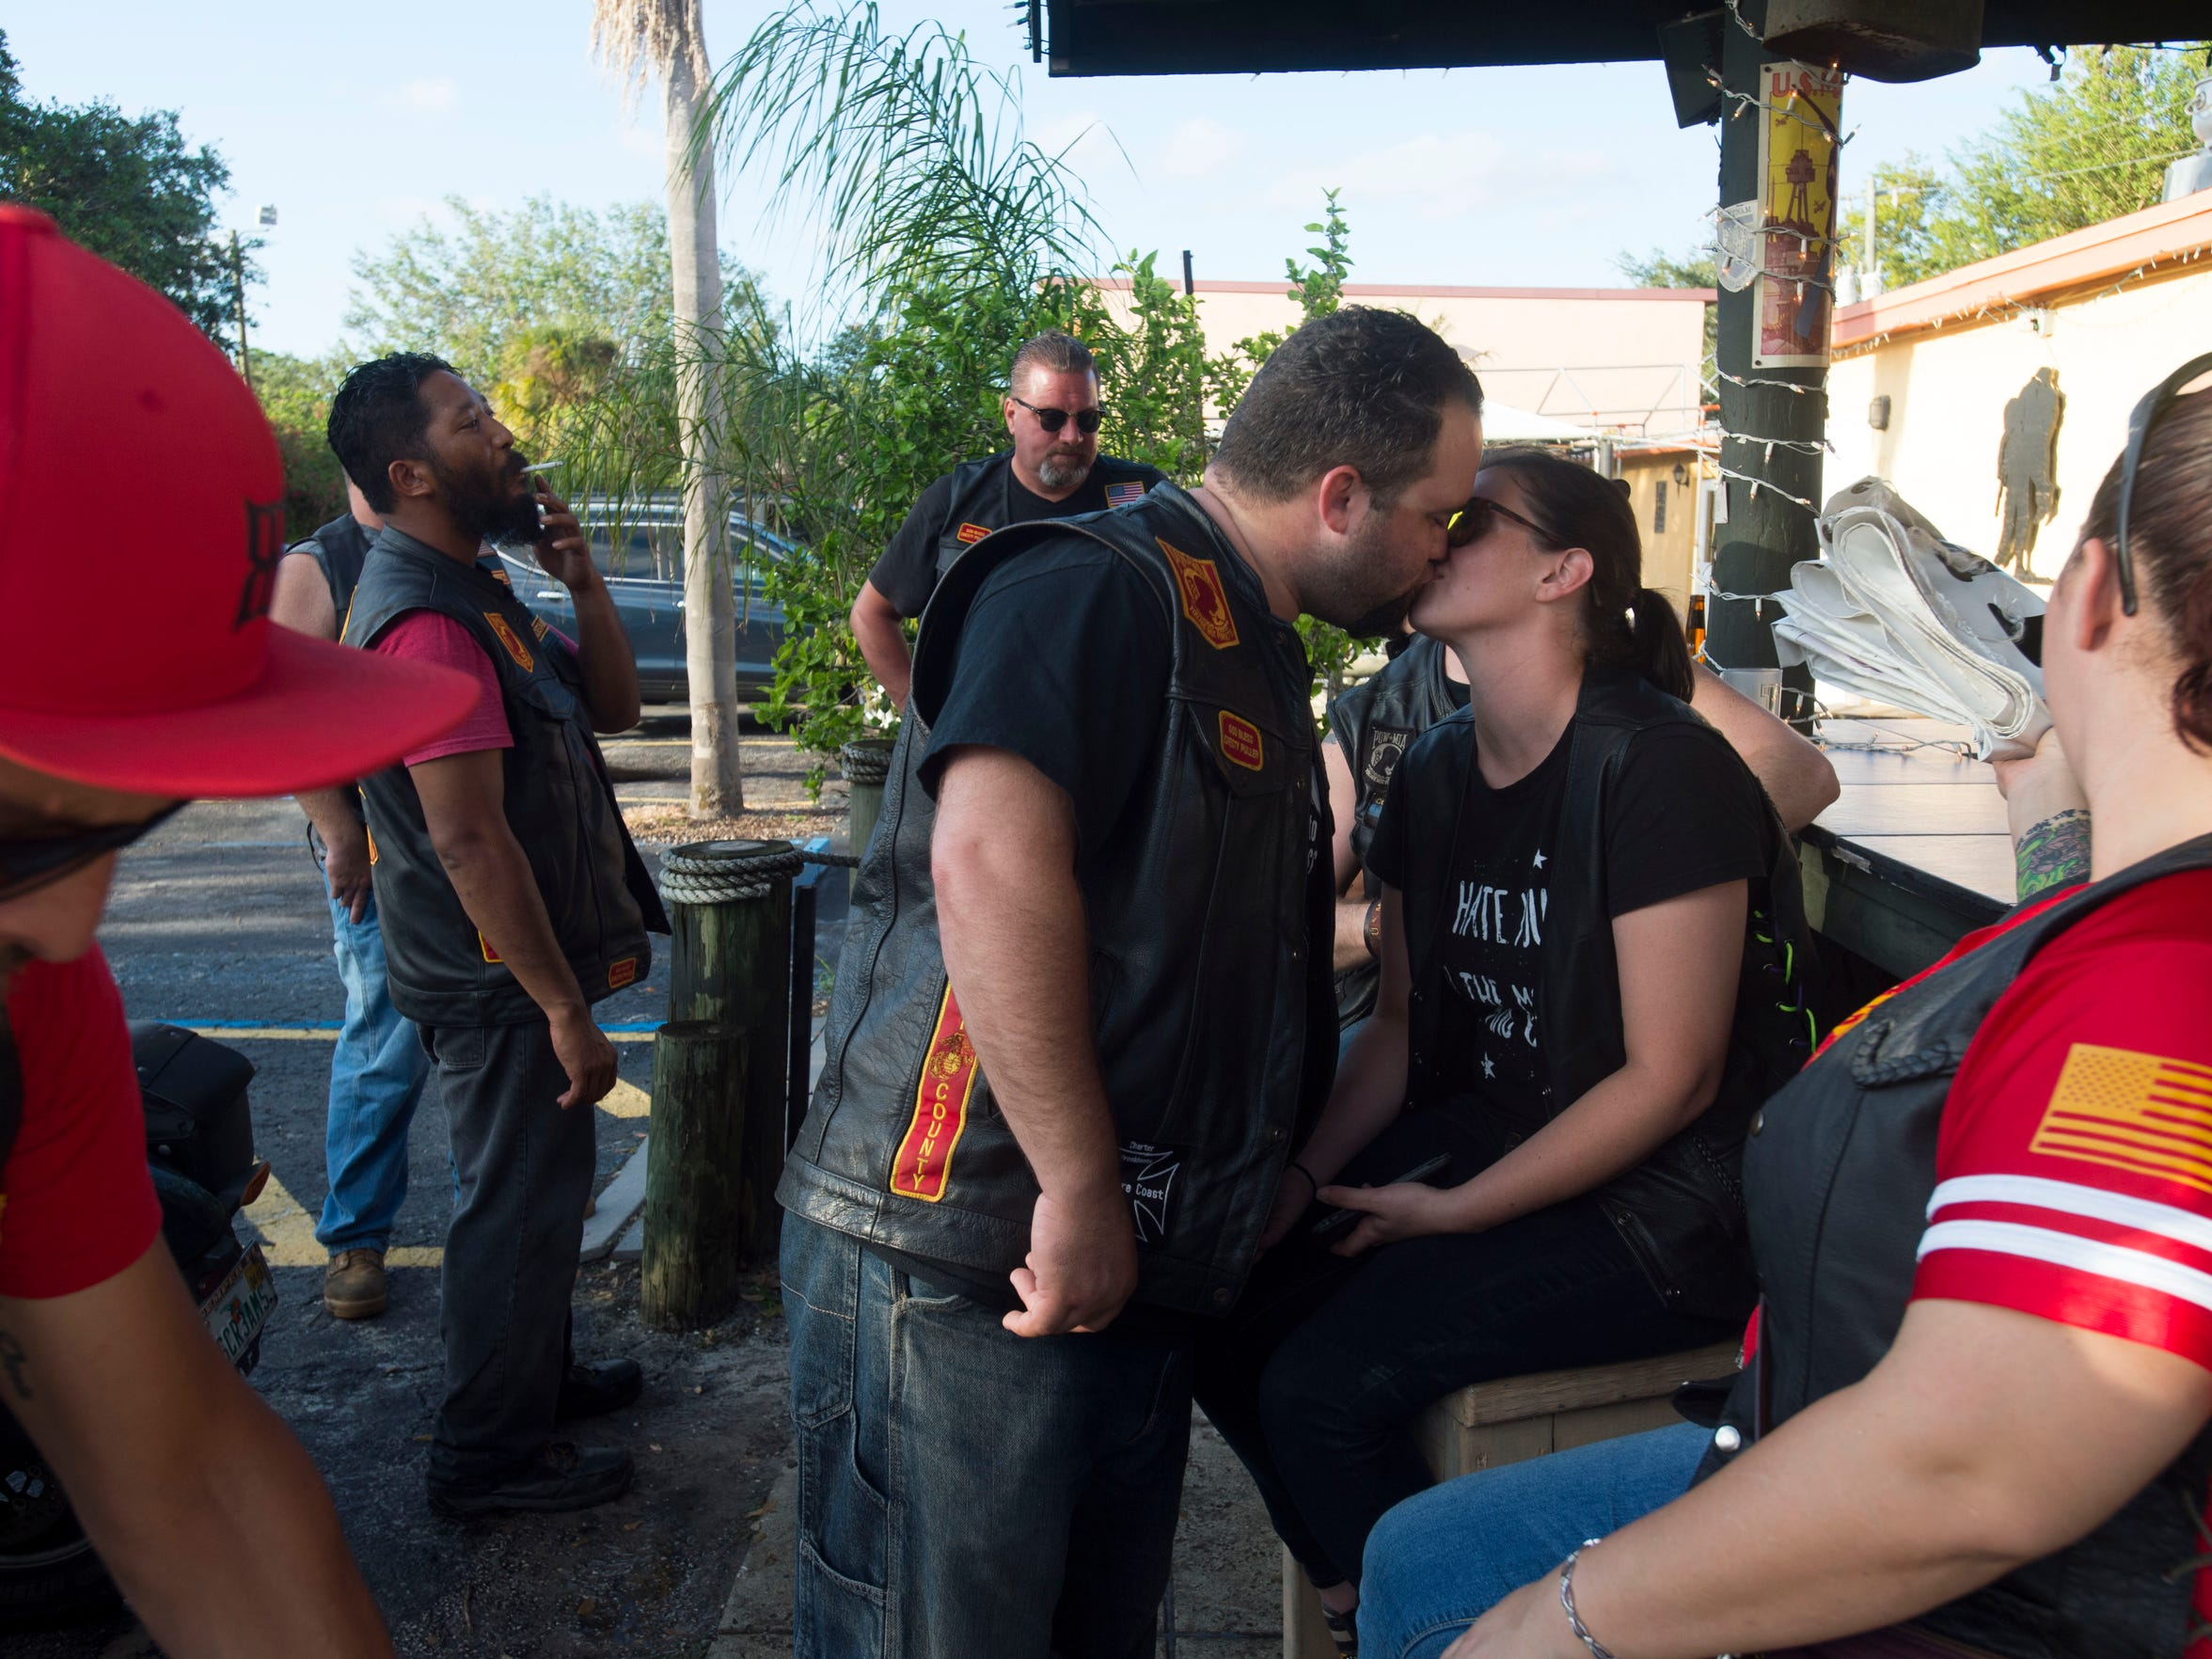 "A year after David Merrill's final separation from Jen, he reignited a relationship with an old friend, Becca, and the couple is going strong. They share a kiss at a fundraiser thrown by about a dozen area motorcycle groups, including his group, Leathernecks Martin County, on Oct. 14, 2017, at the Amvets Post 92 in Rio. The duo first met in 2008, before David left for the Marine Corps, but they had no contact for seven years. When they reconnected, ""it was an instant thing like we never missed a day or anything,"" David said. ""Being with her has been a complete turnaround."""